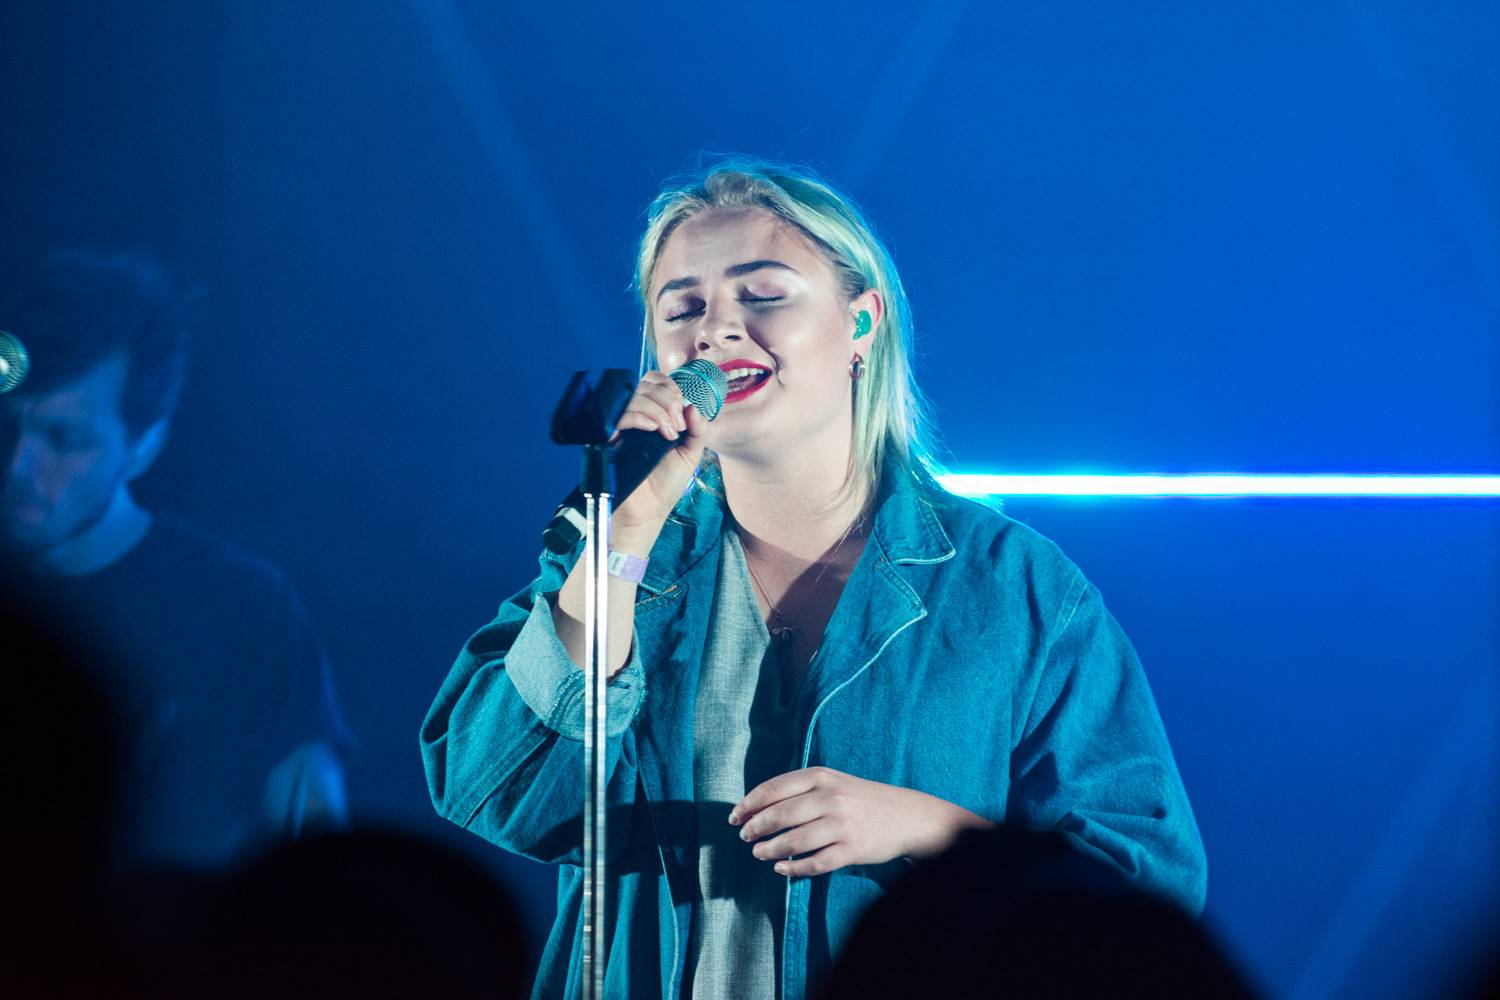 Lapsley at Fortune Sound Club, Vancouver, Apr. 26 2016. Pavel Boiko photo.